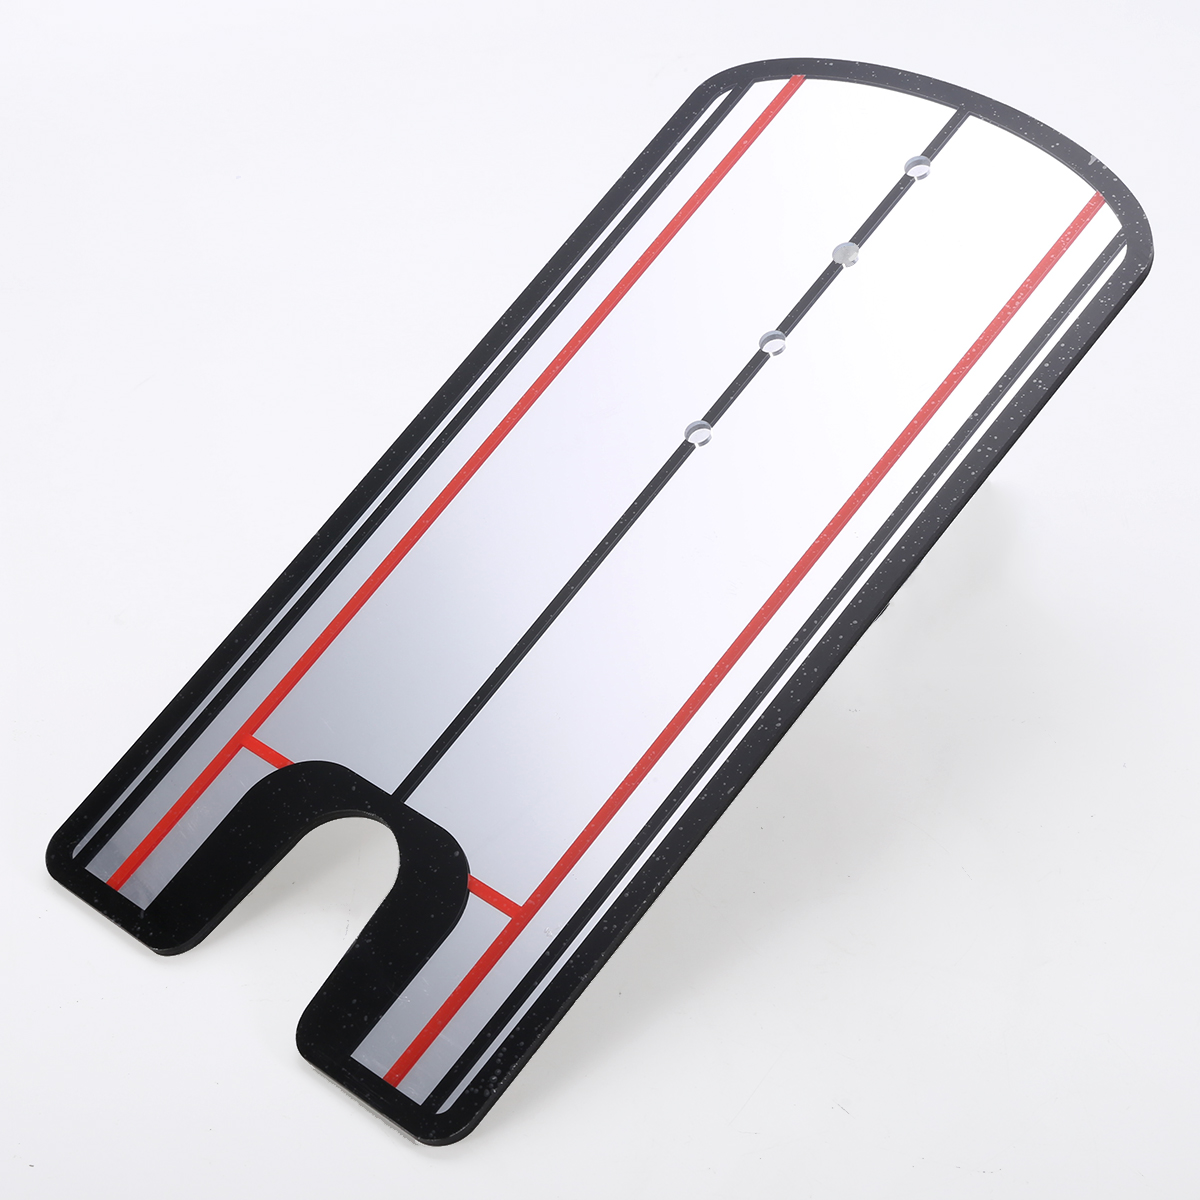 1PC Golf Putting Mirror Golf Swing Straight Golf Training Aid Swing Trainer 31 x 15cm Professional Golf Practice Putting Mirror